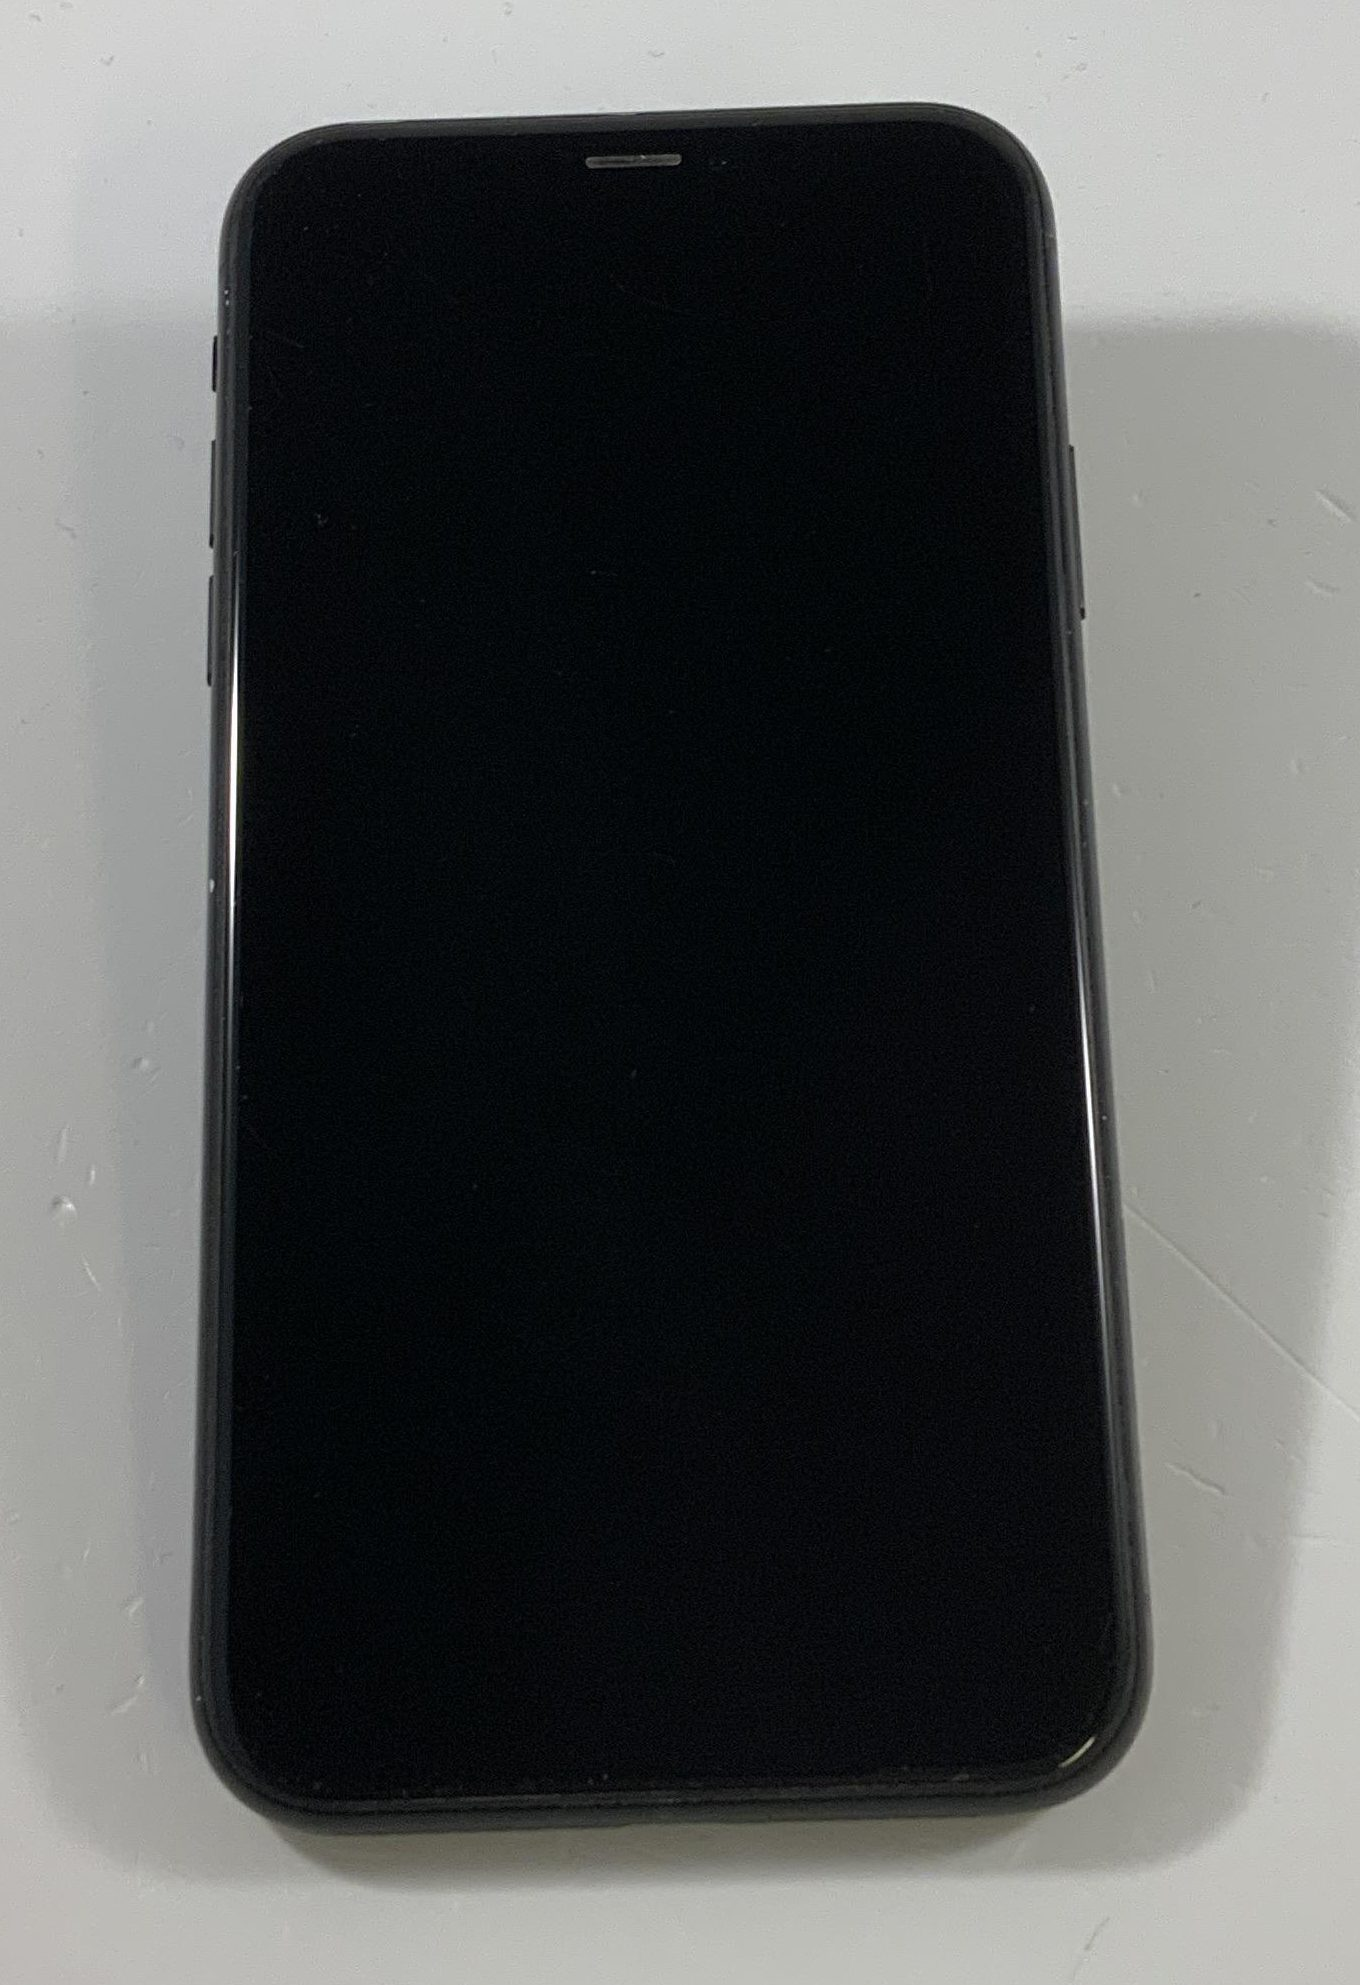 iPhone XR 64GB, 64GB, Black, imagen 2